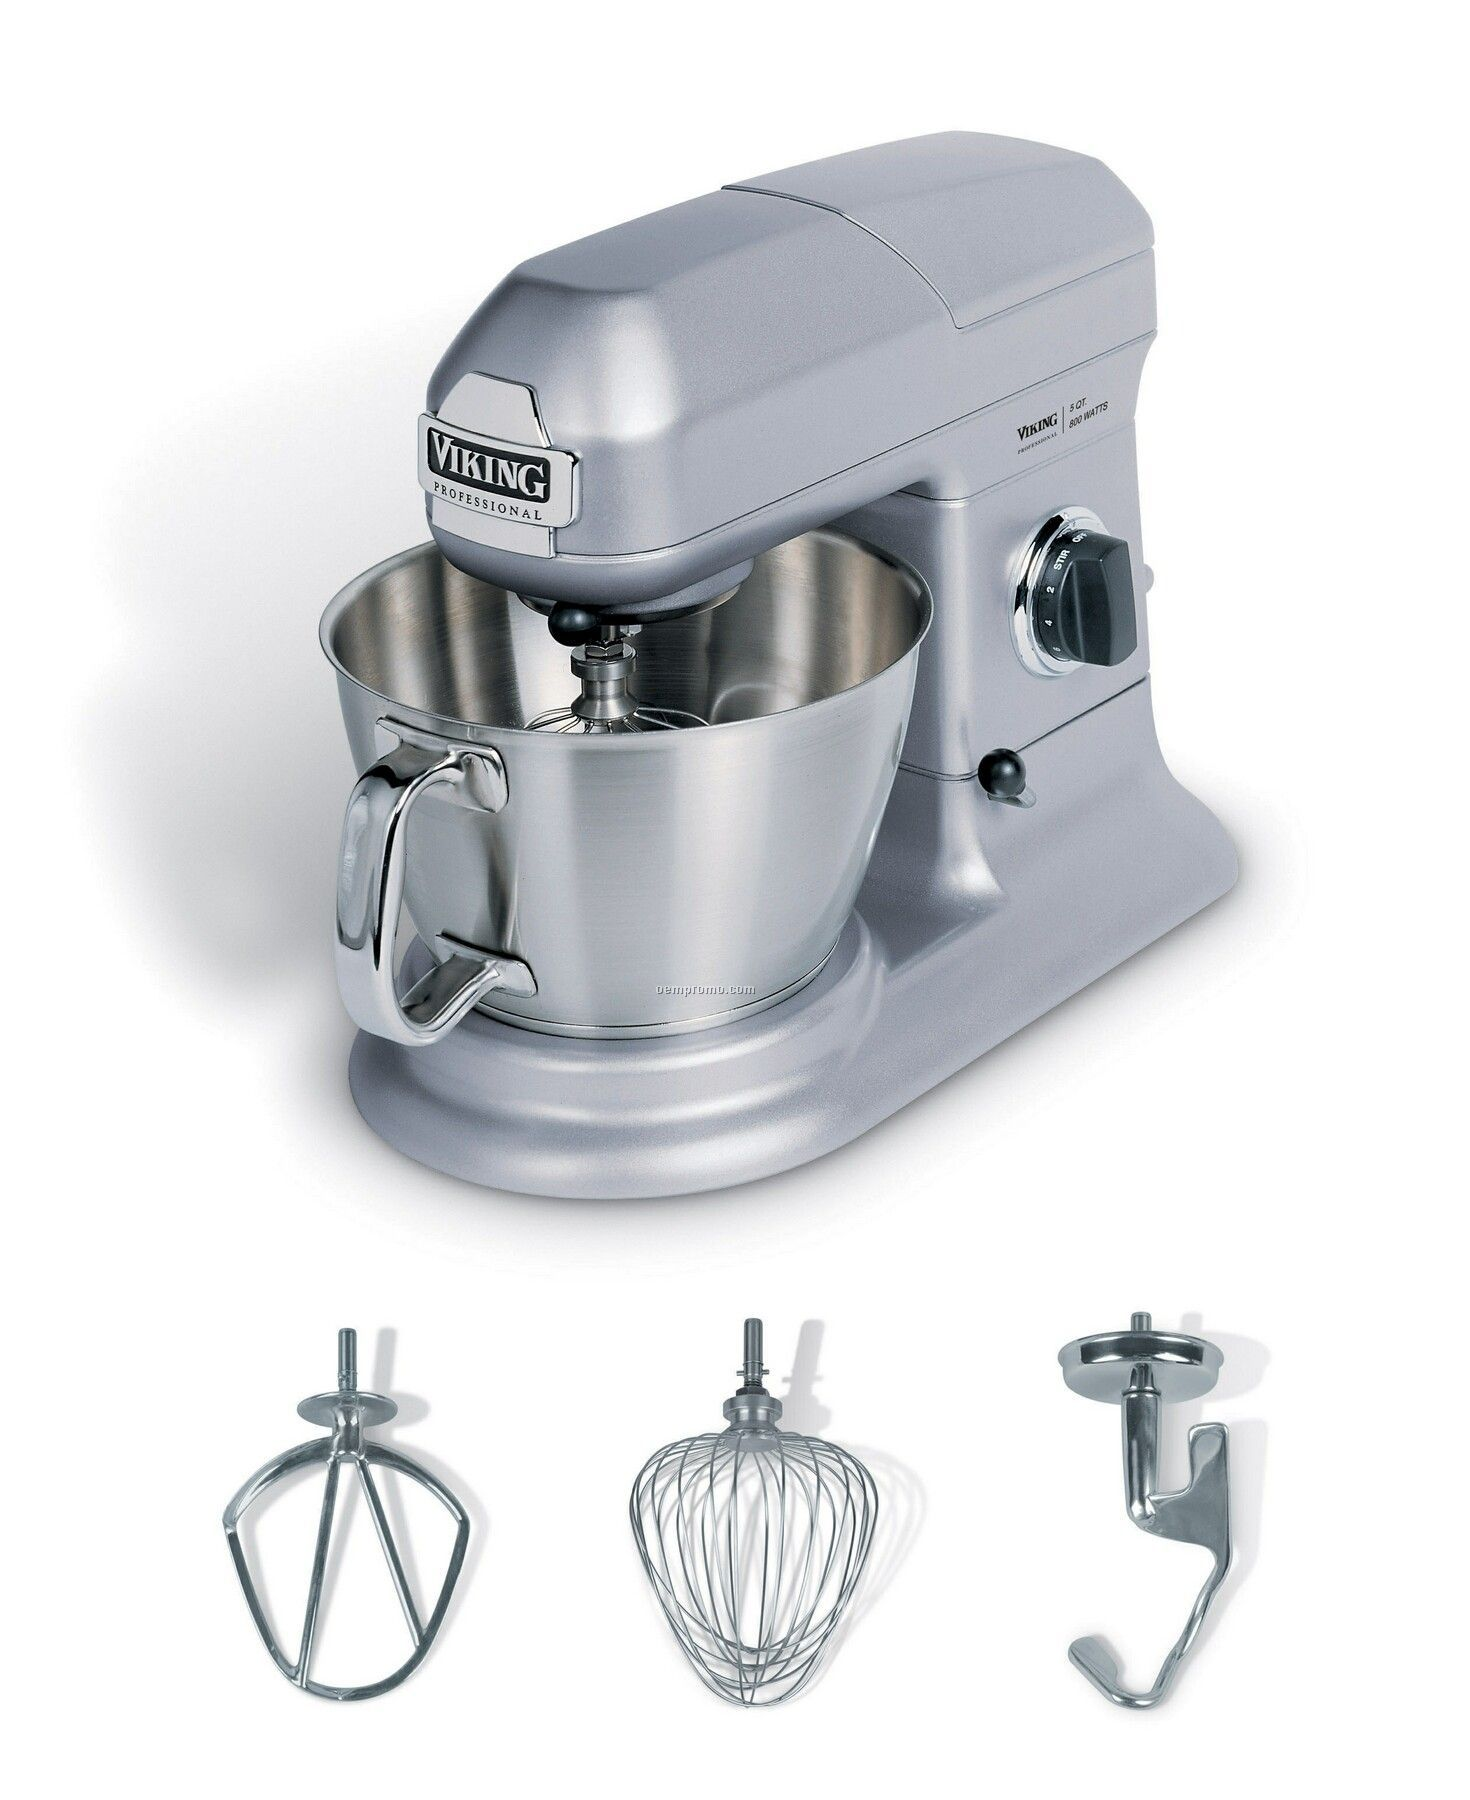 Viking 5 Quart Stand Mixer